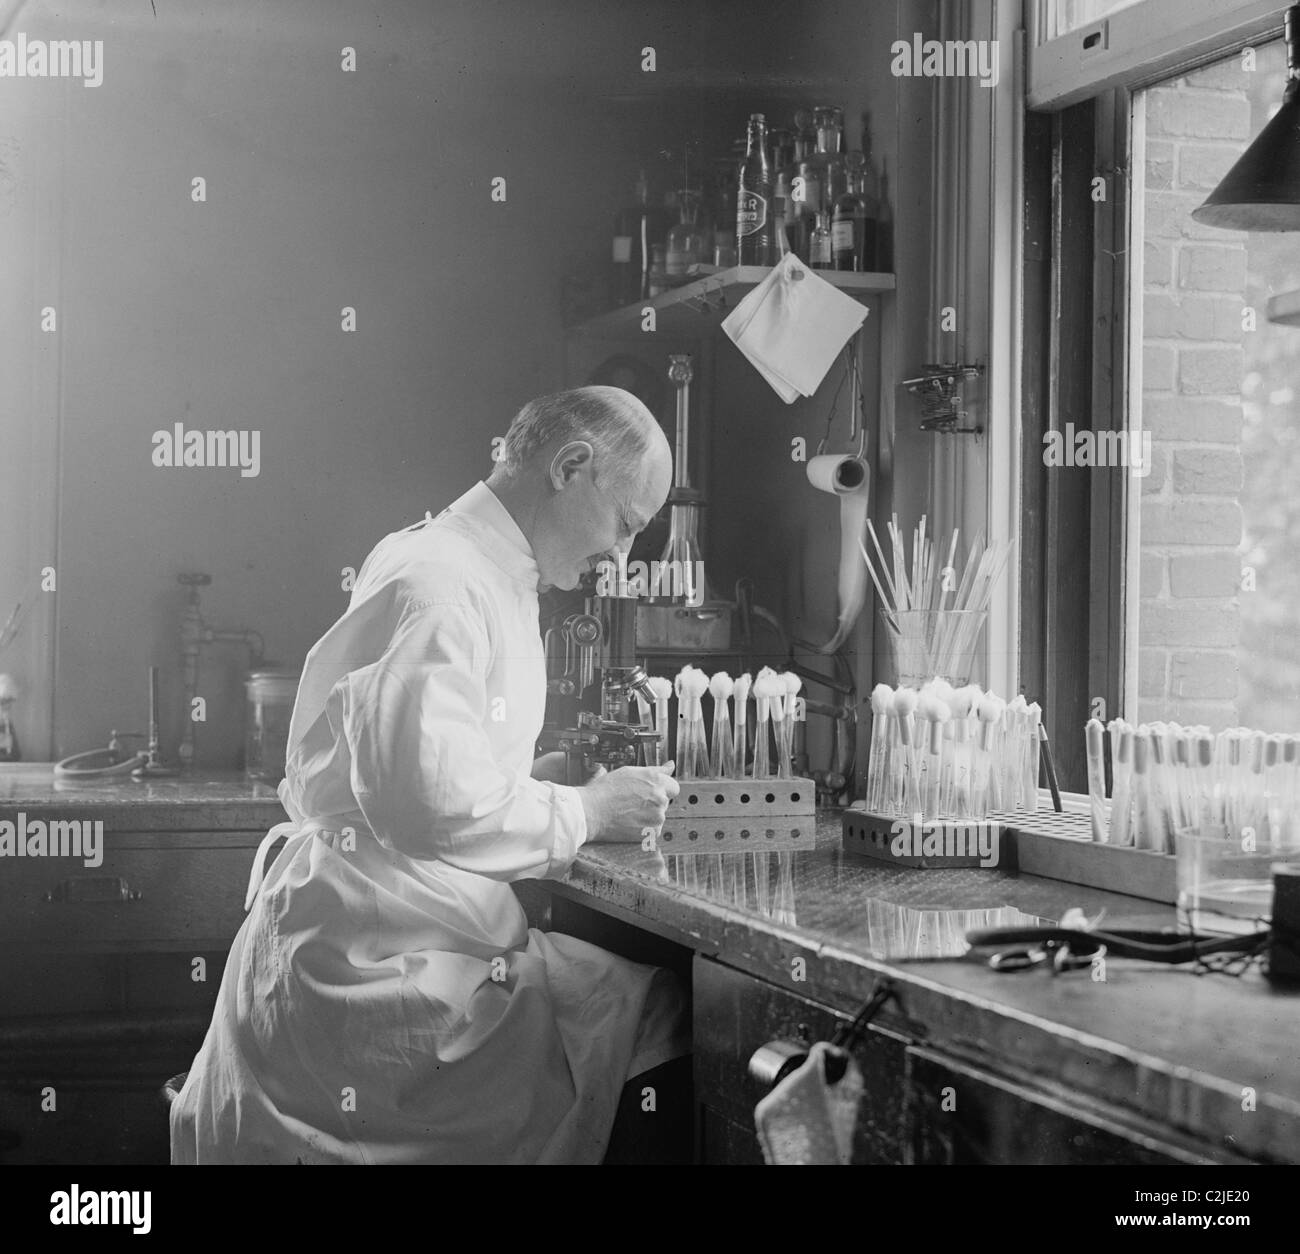 Dr. Edward Francis, bacteriologist in his laboratory - Stock Image